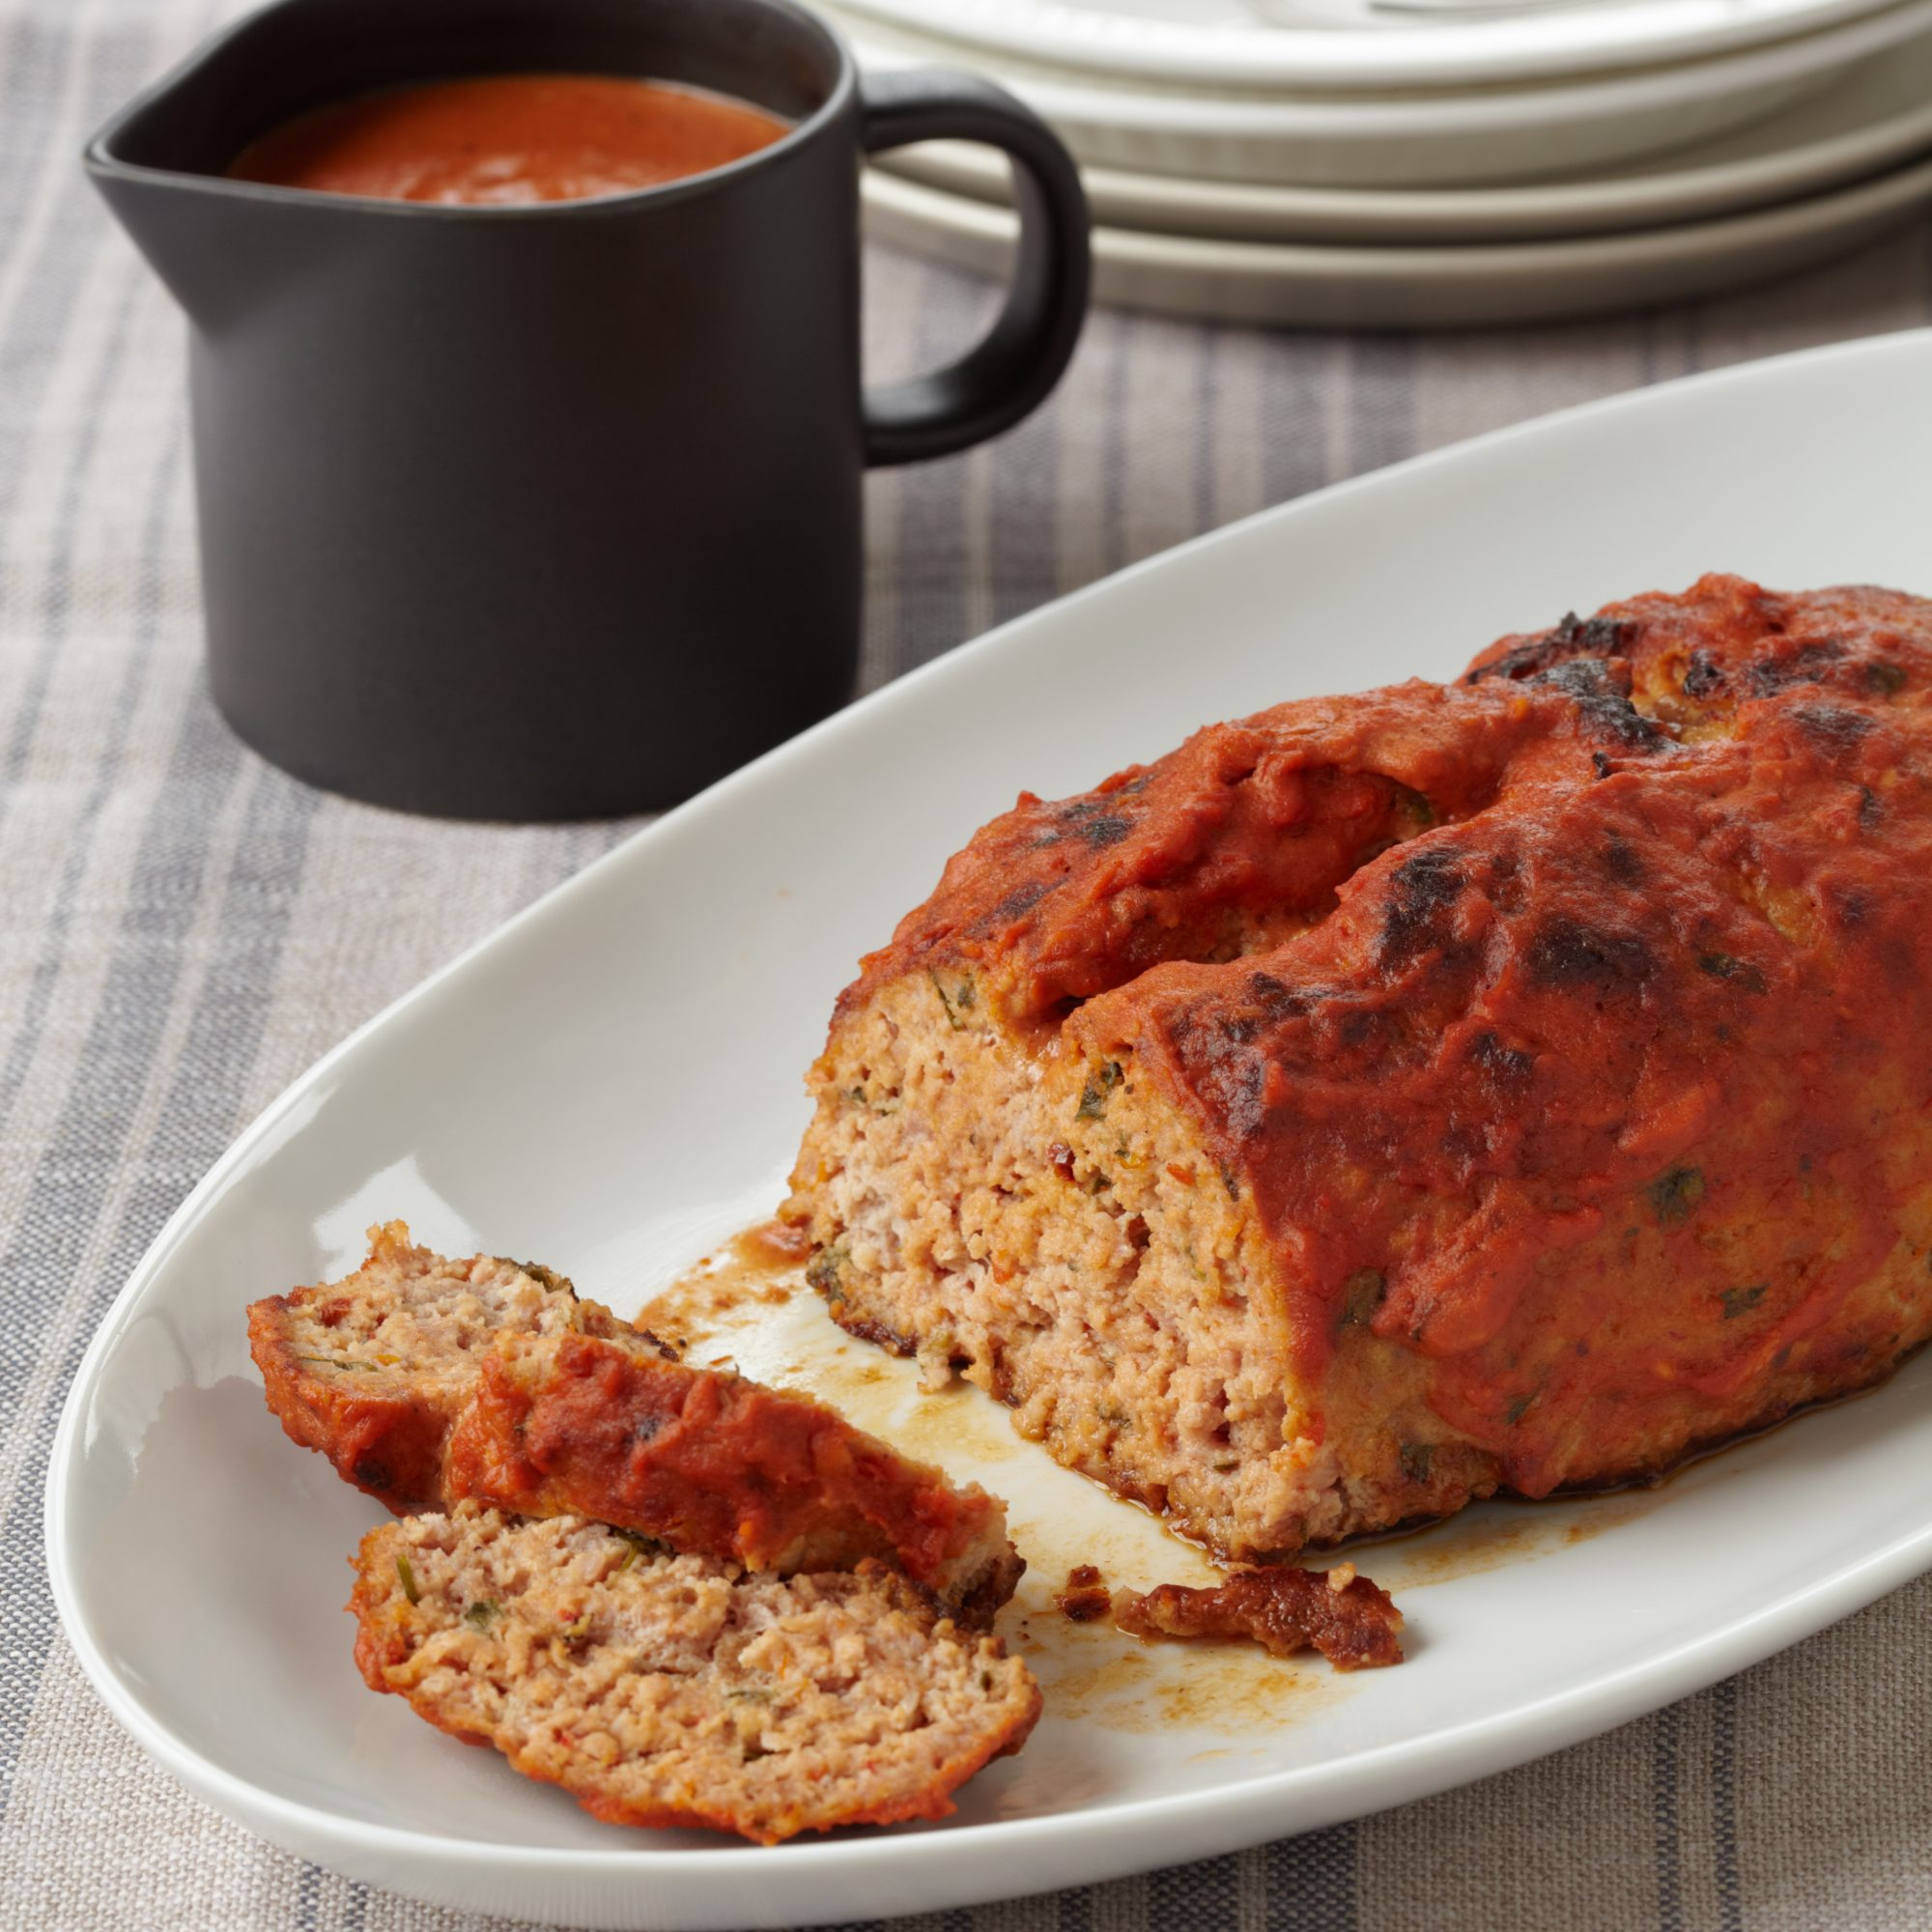 Chickpea and Portabello Meatless Meatloaf by Marcus Samuelsson